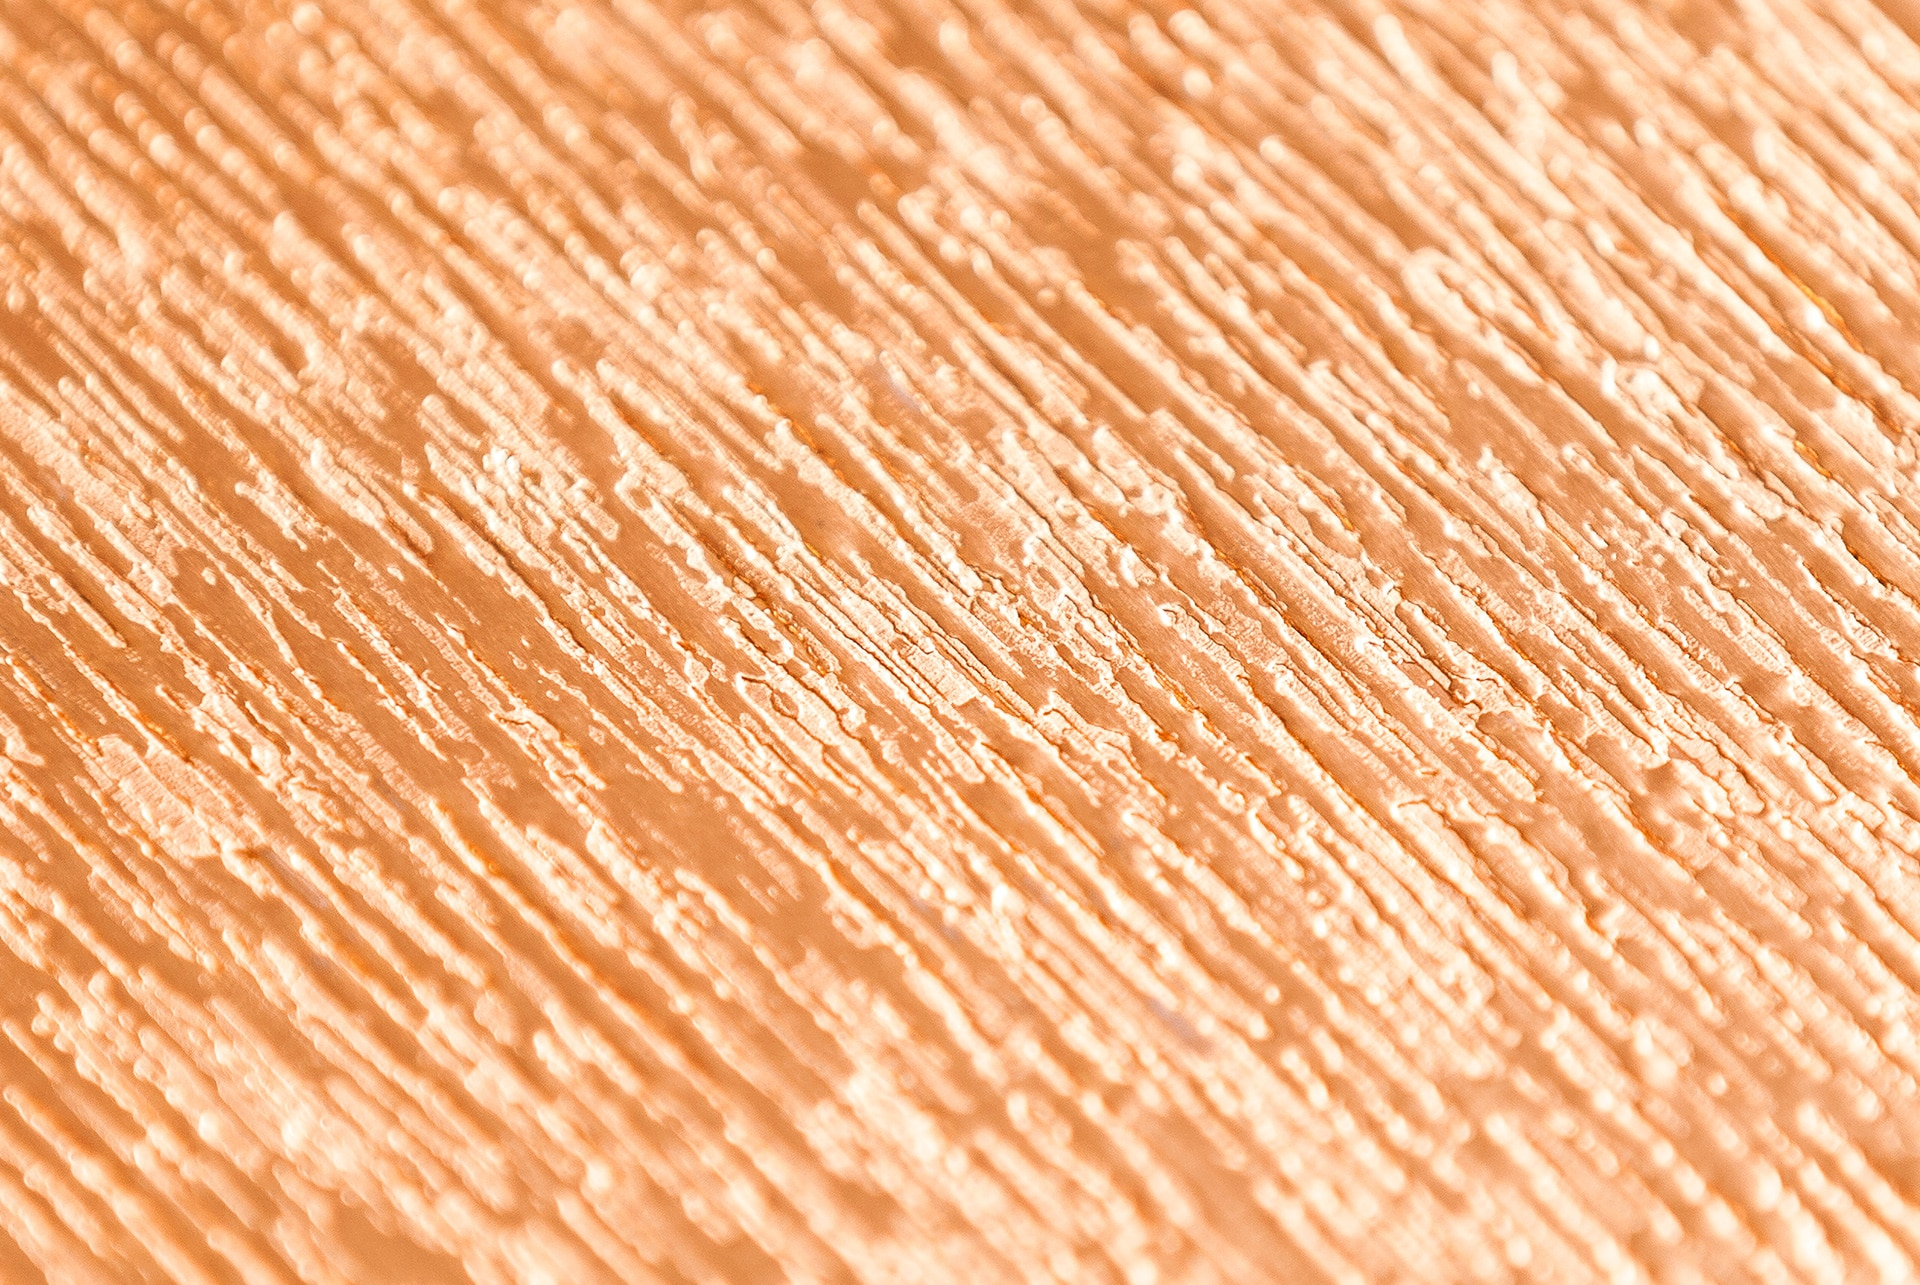 Copper Rainscreen Cladding Material